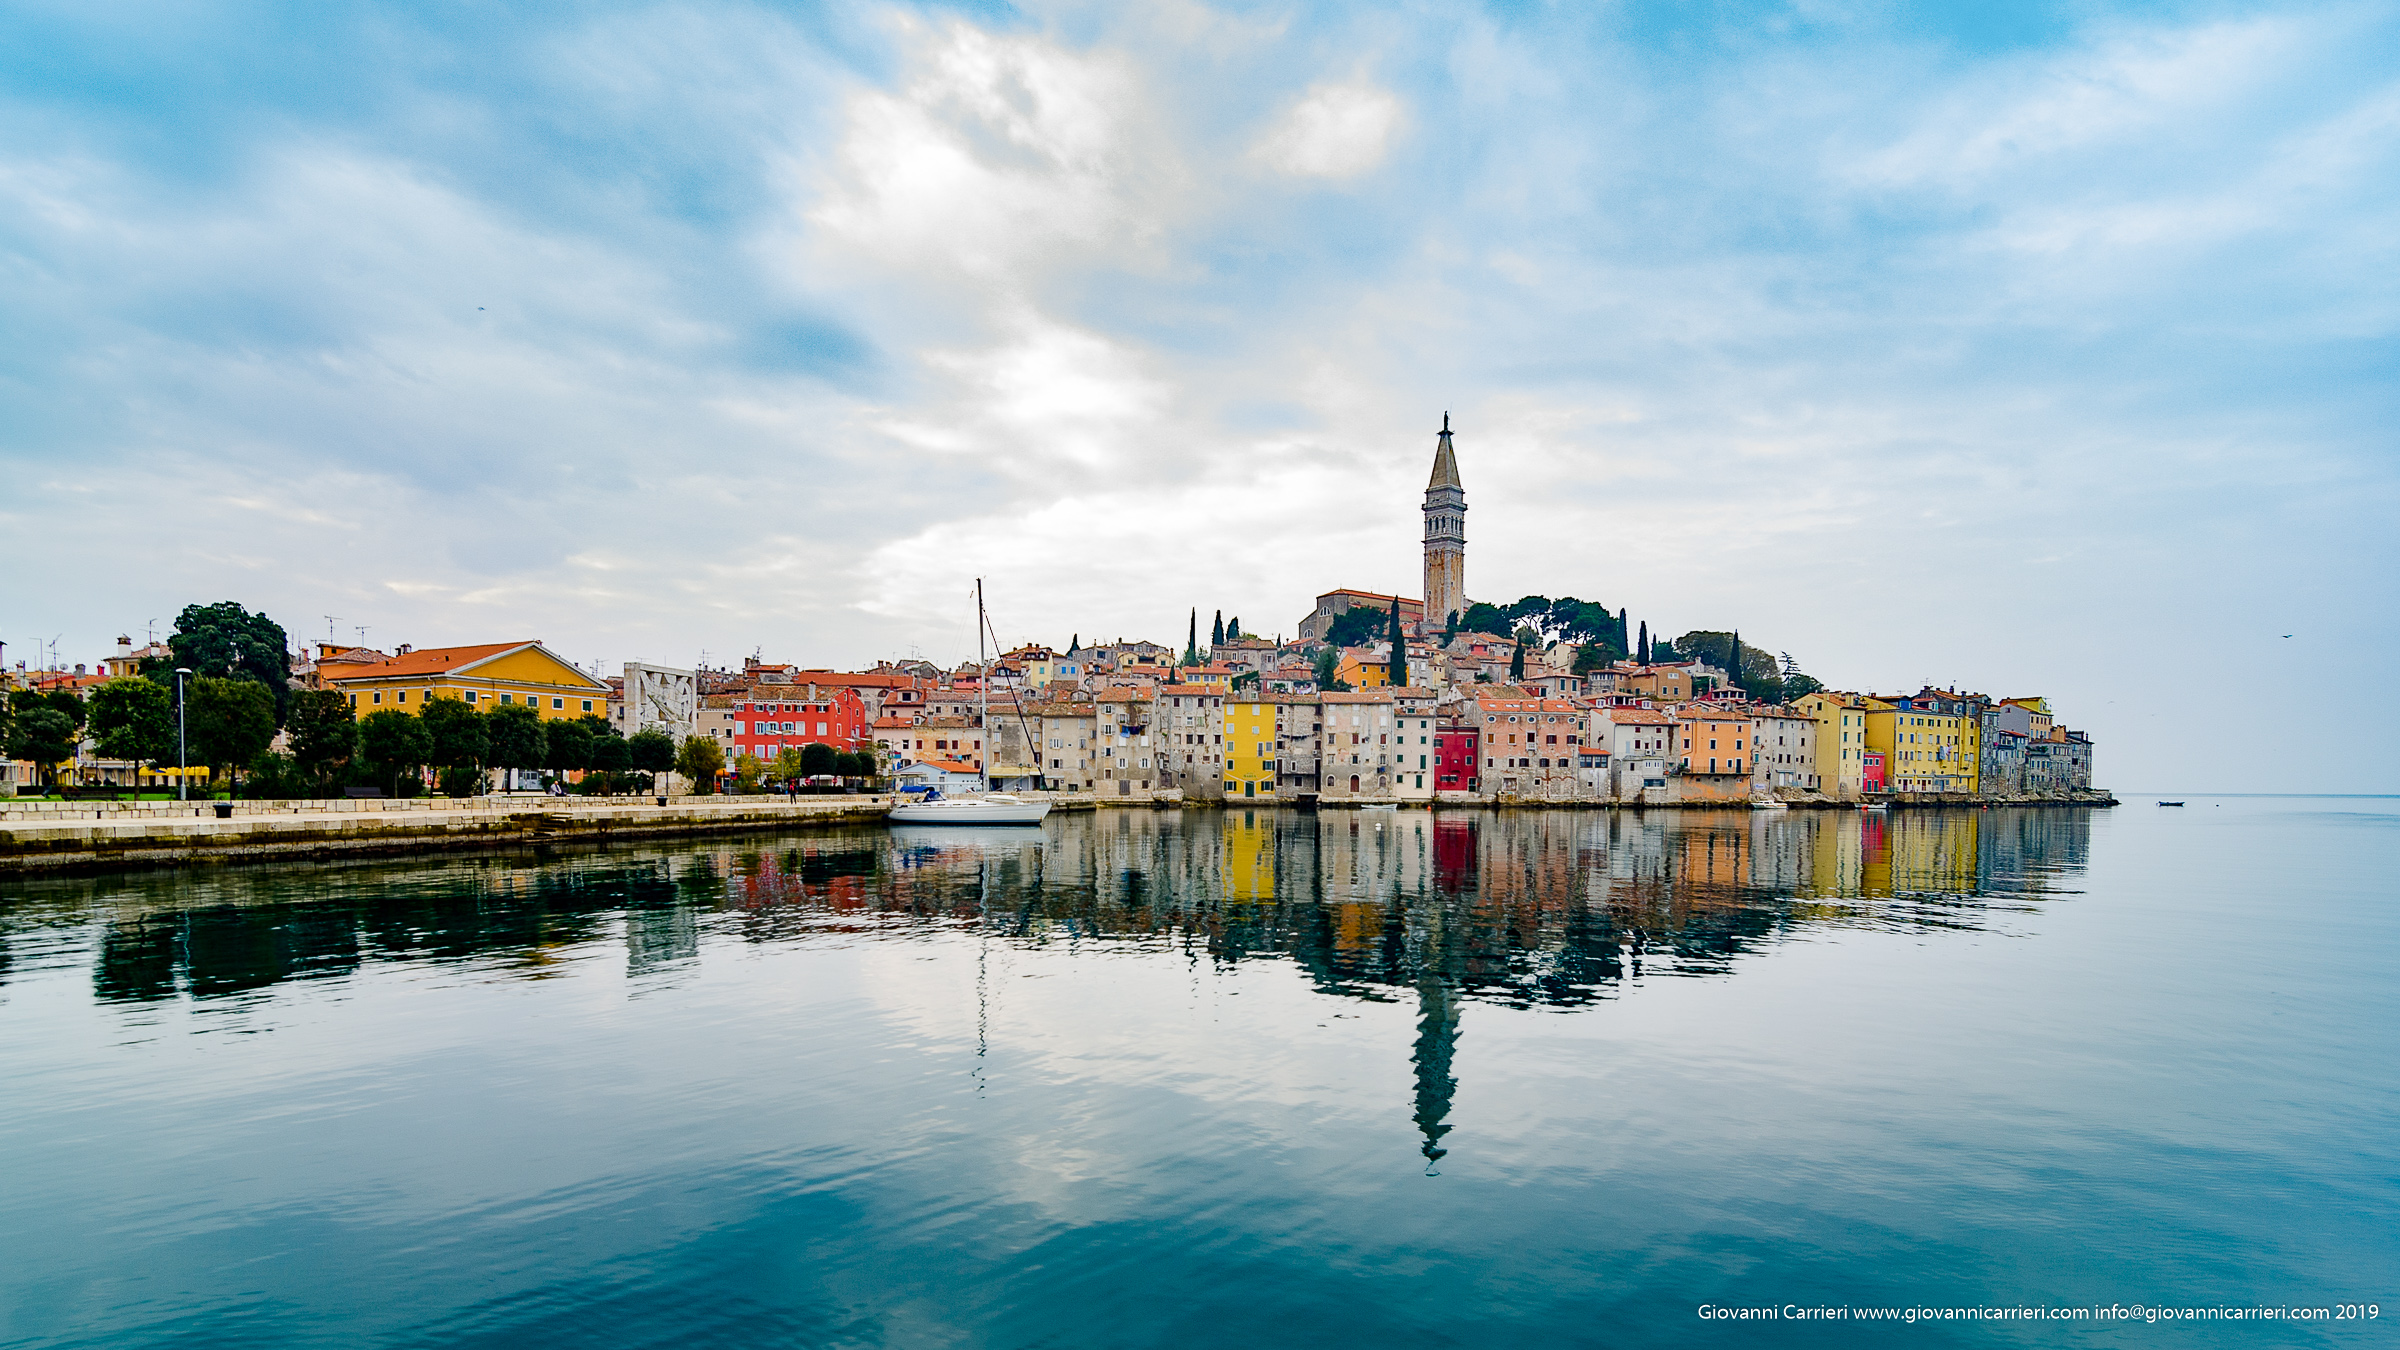 Rovinj is reflected in the calm sea